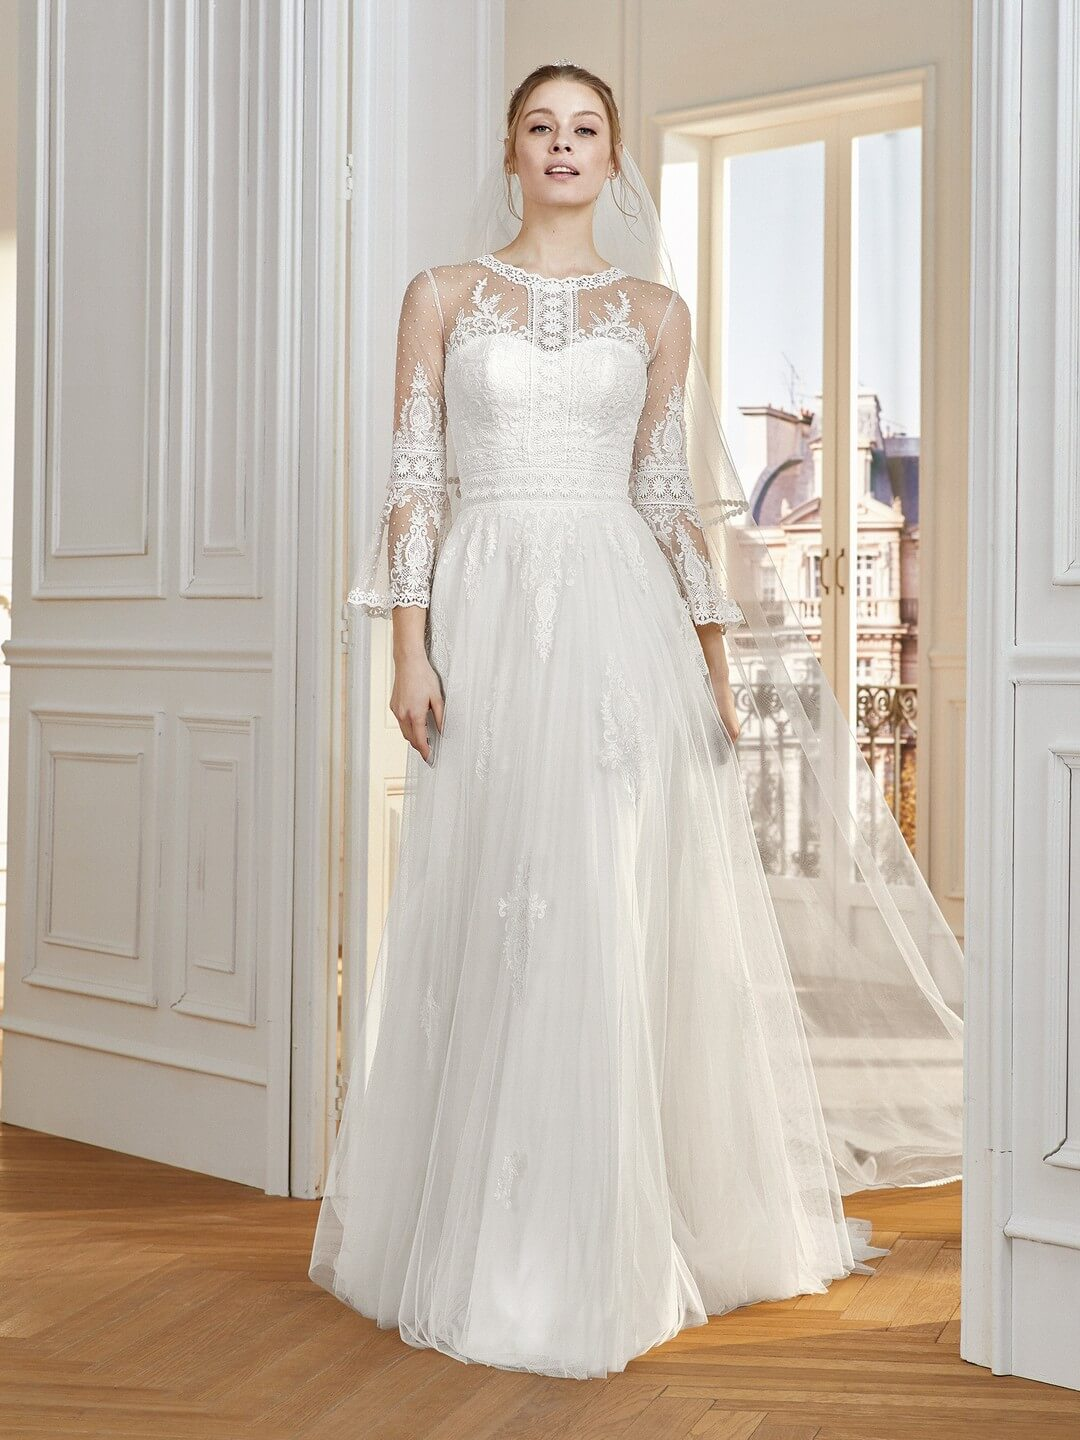 Νυφικό CHAMPERET της collection St. Patrick του οίκου Pronovias